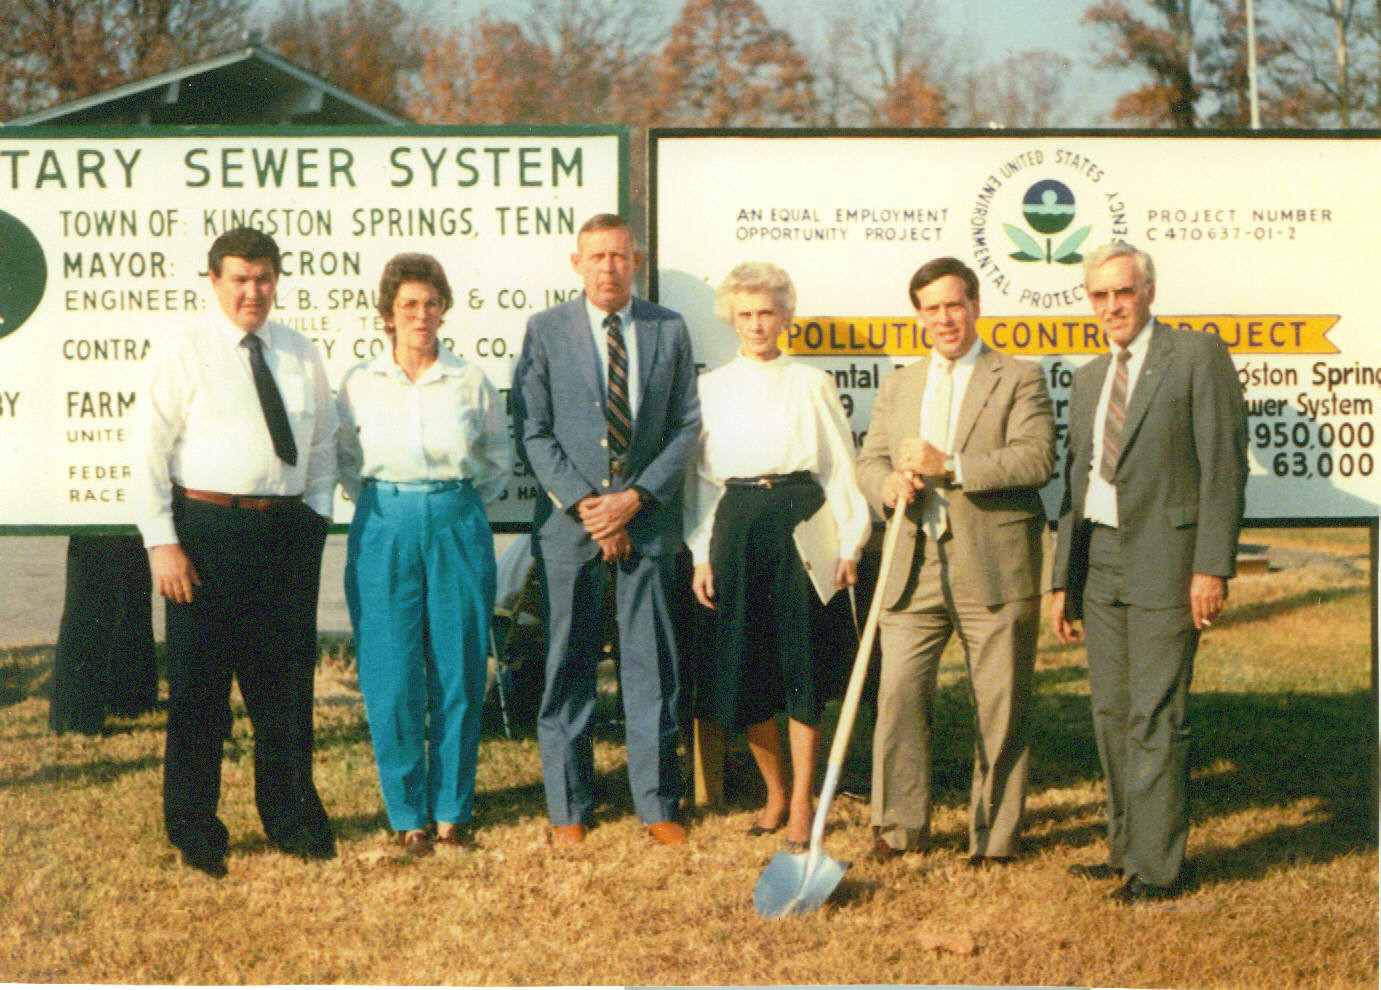 Town officials at the sewer groundbreaking in 1984